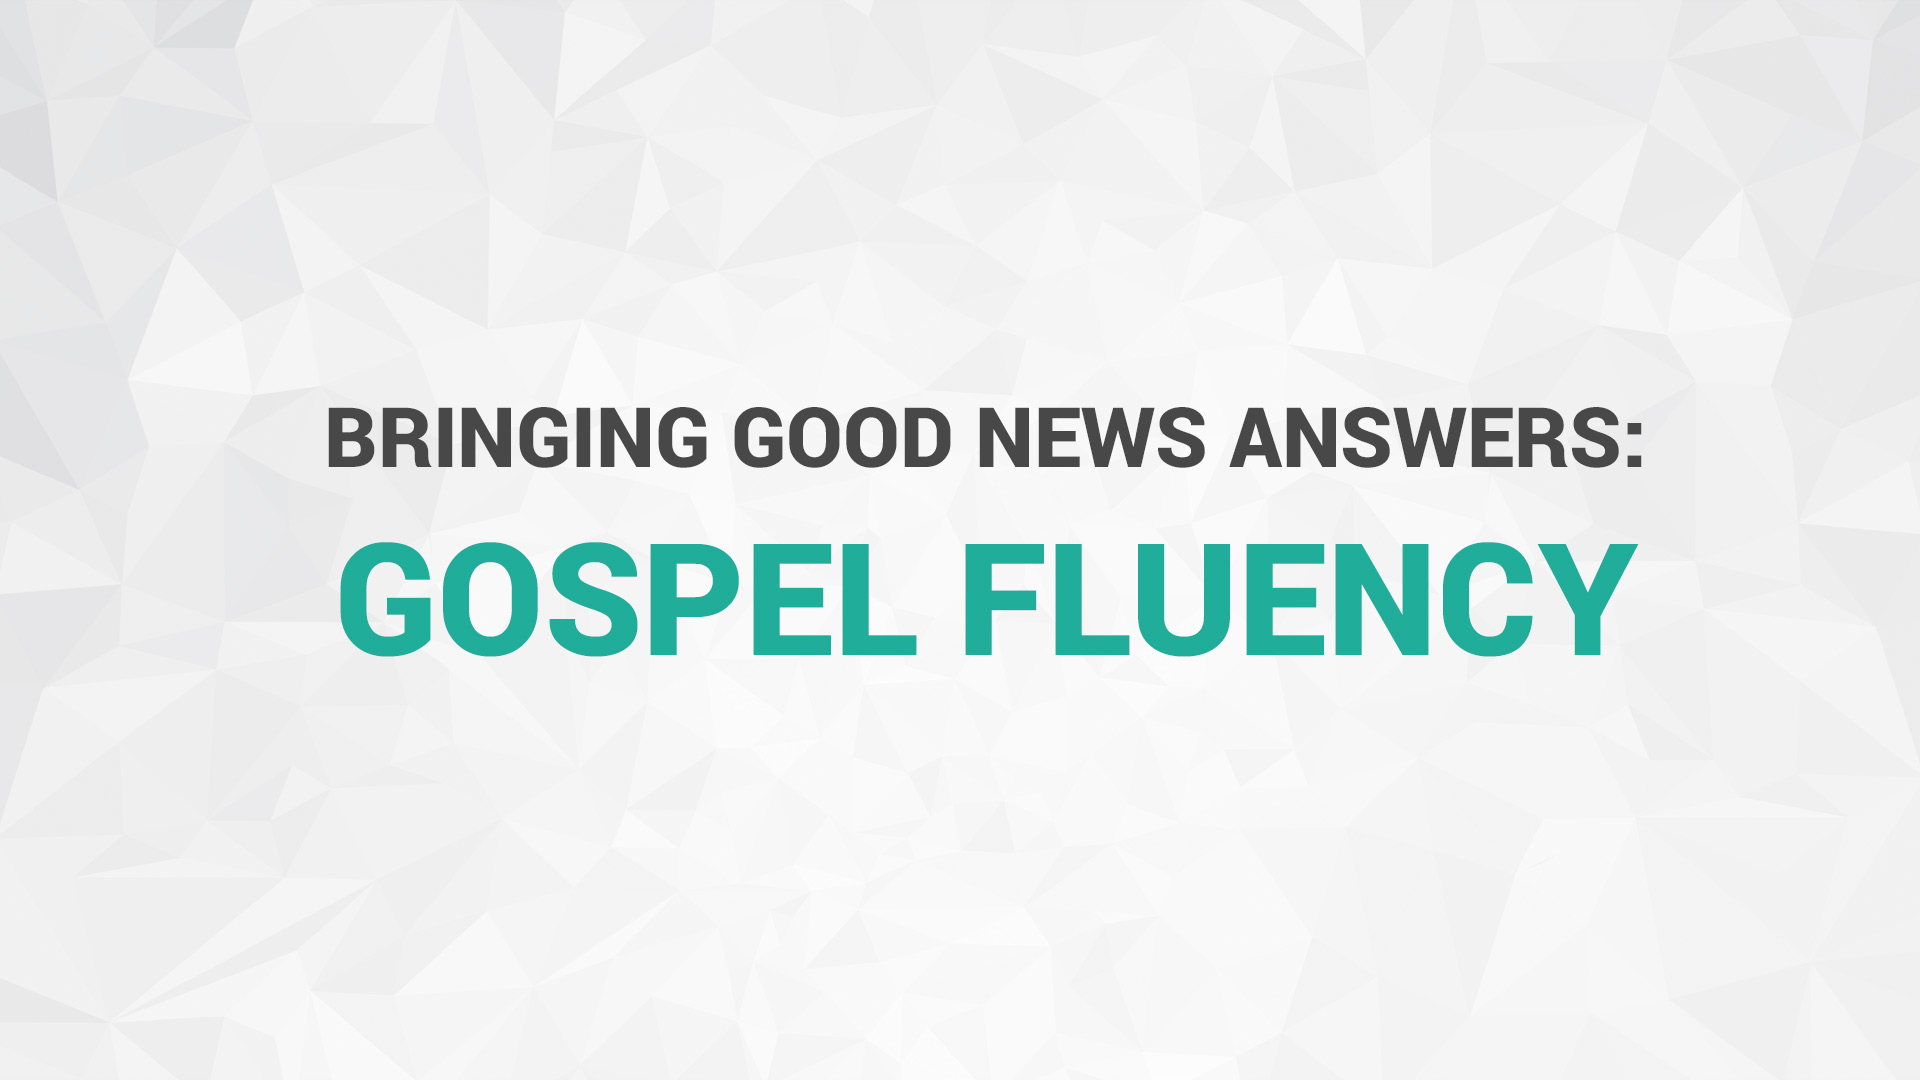 Bringing Good News Answers with Gospel Fluency